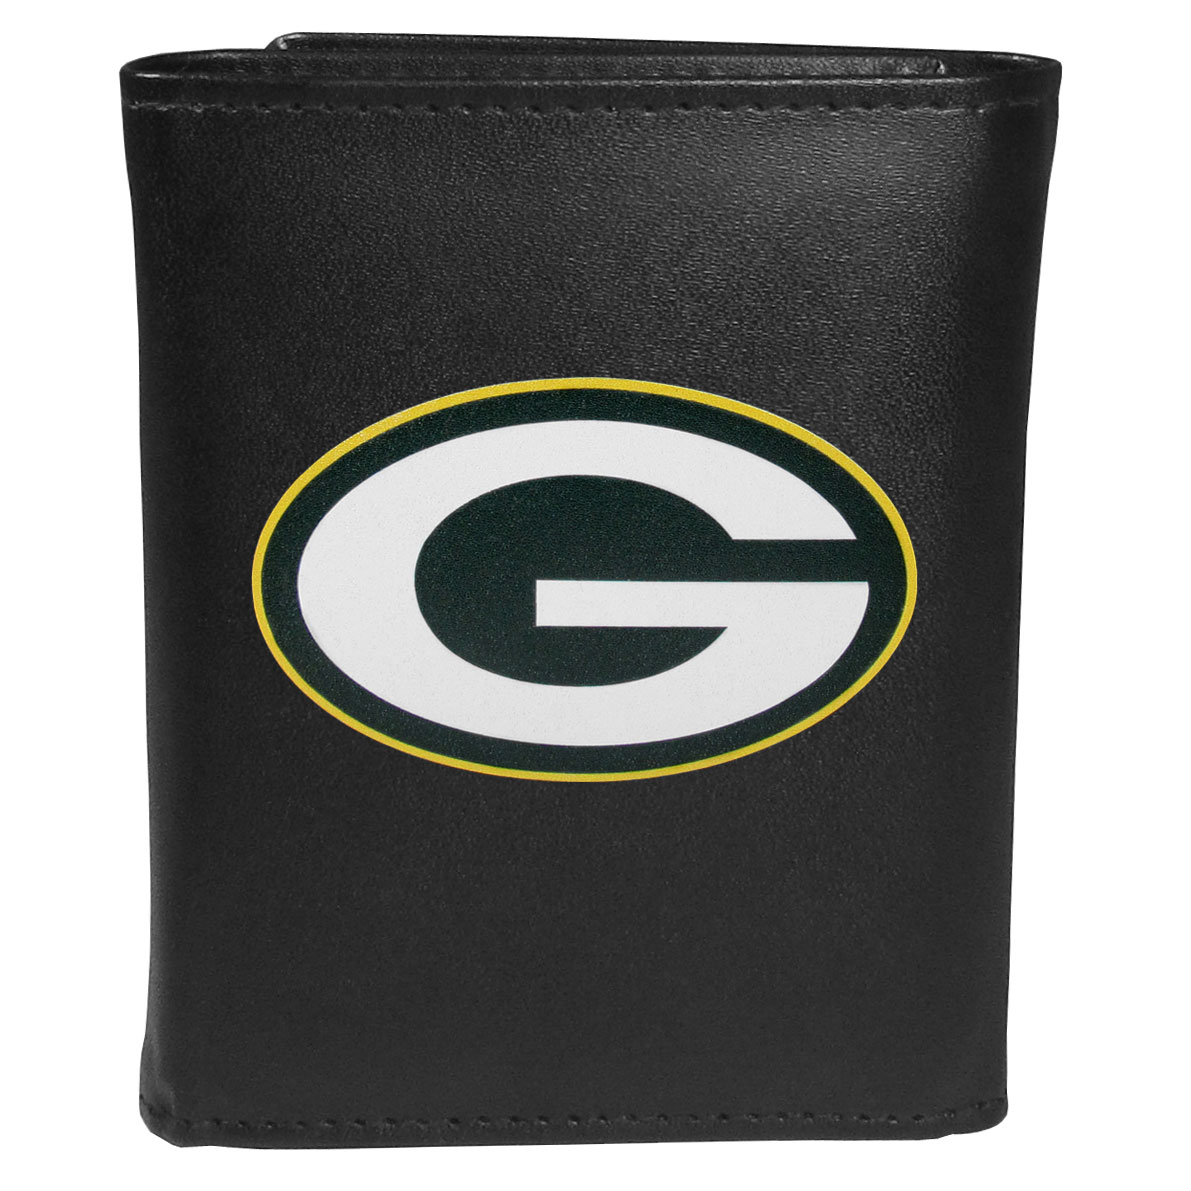 Green Bay Packers Leather Tri-fold Wallet, Large Logo - Our classic fine leather tri-fold wallet is meticulously crafted with genuine leather that will age beautifully so you will have a quality wallet for years to come. This is fan apparel at its finest. The wallet is packed with organizational  features; lots of credit card slots, large billfold pocket, and a window ID slot. The front of the wallet features an extra large Green Bay Packers printed logo.